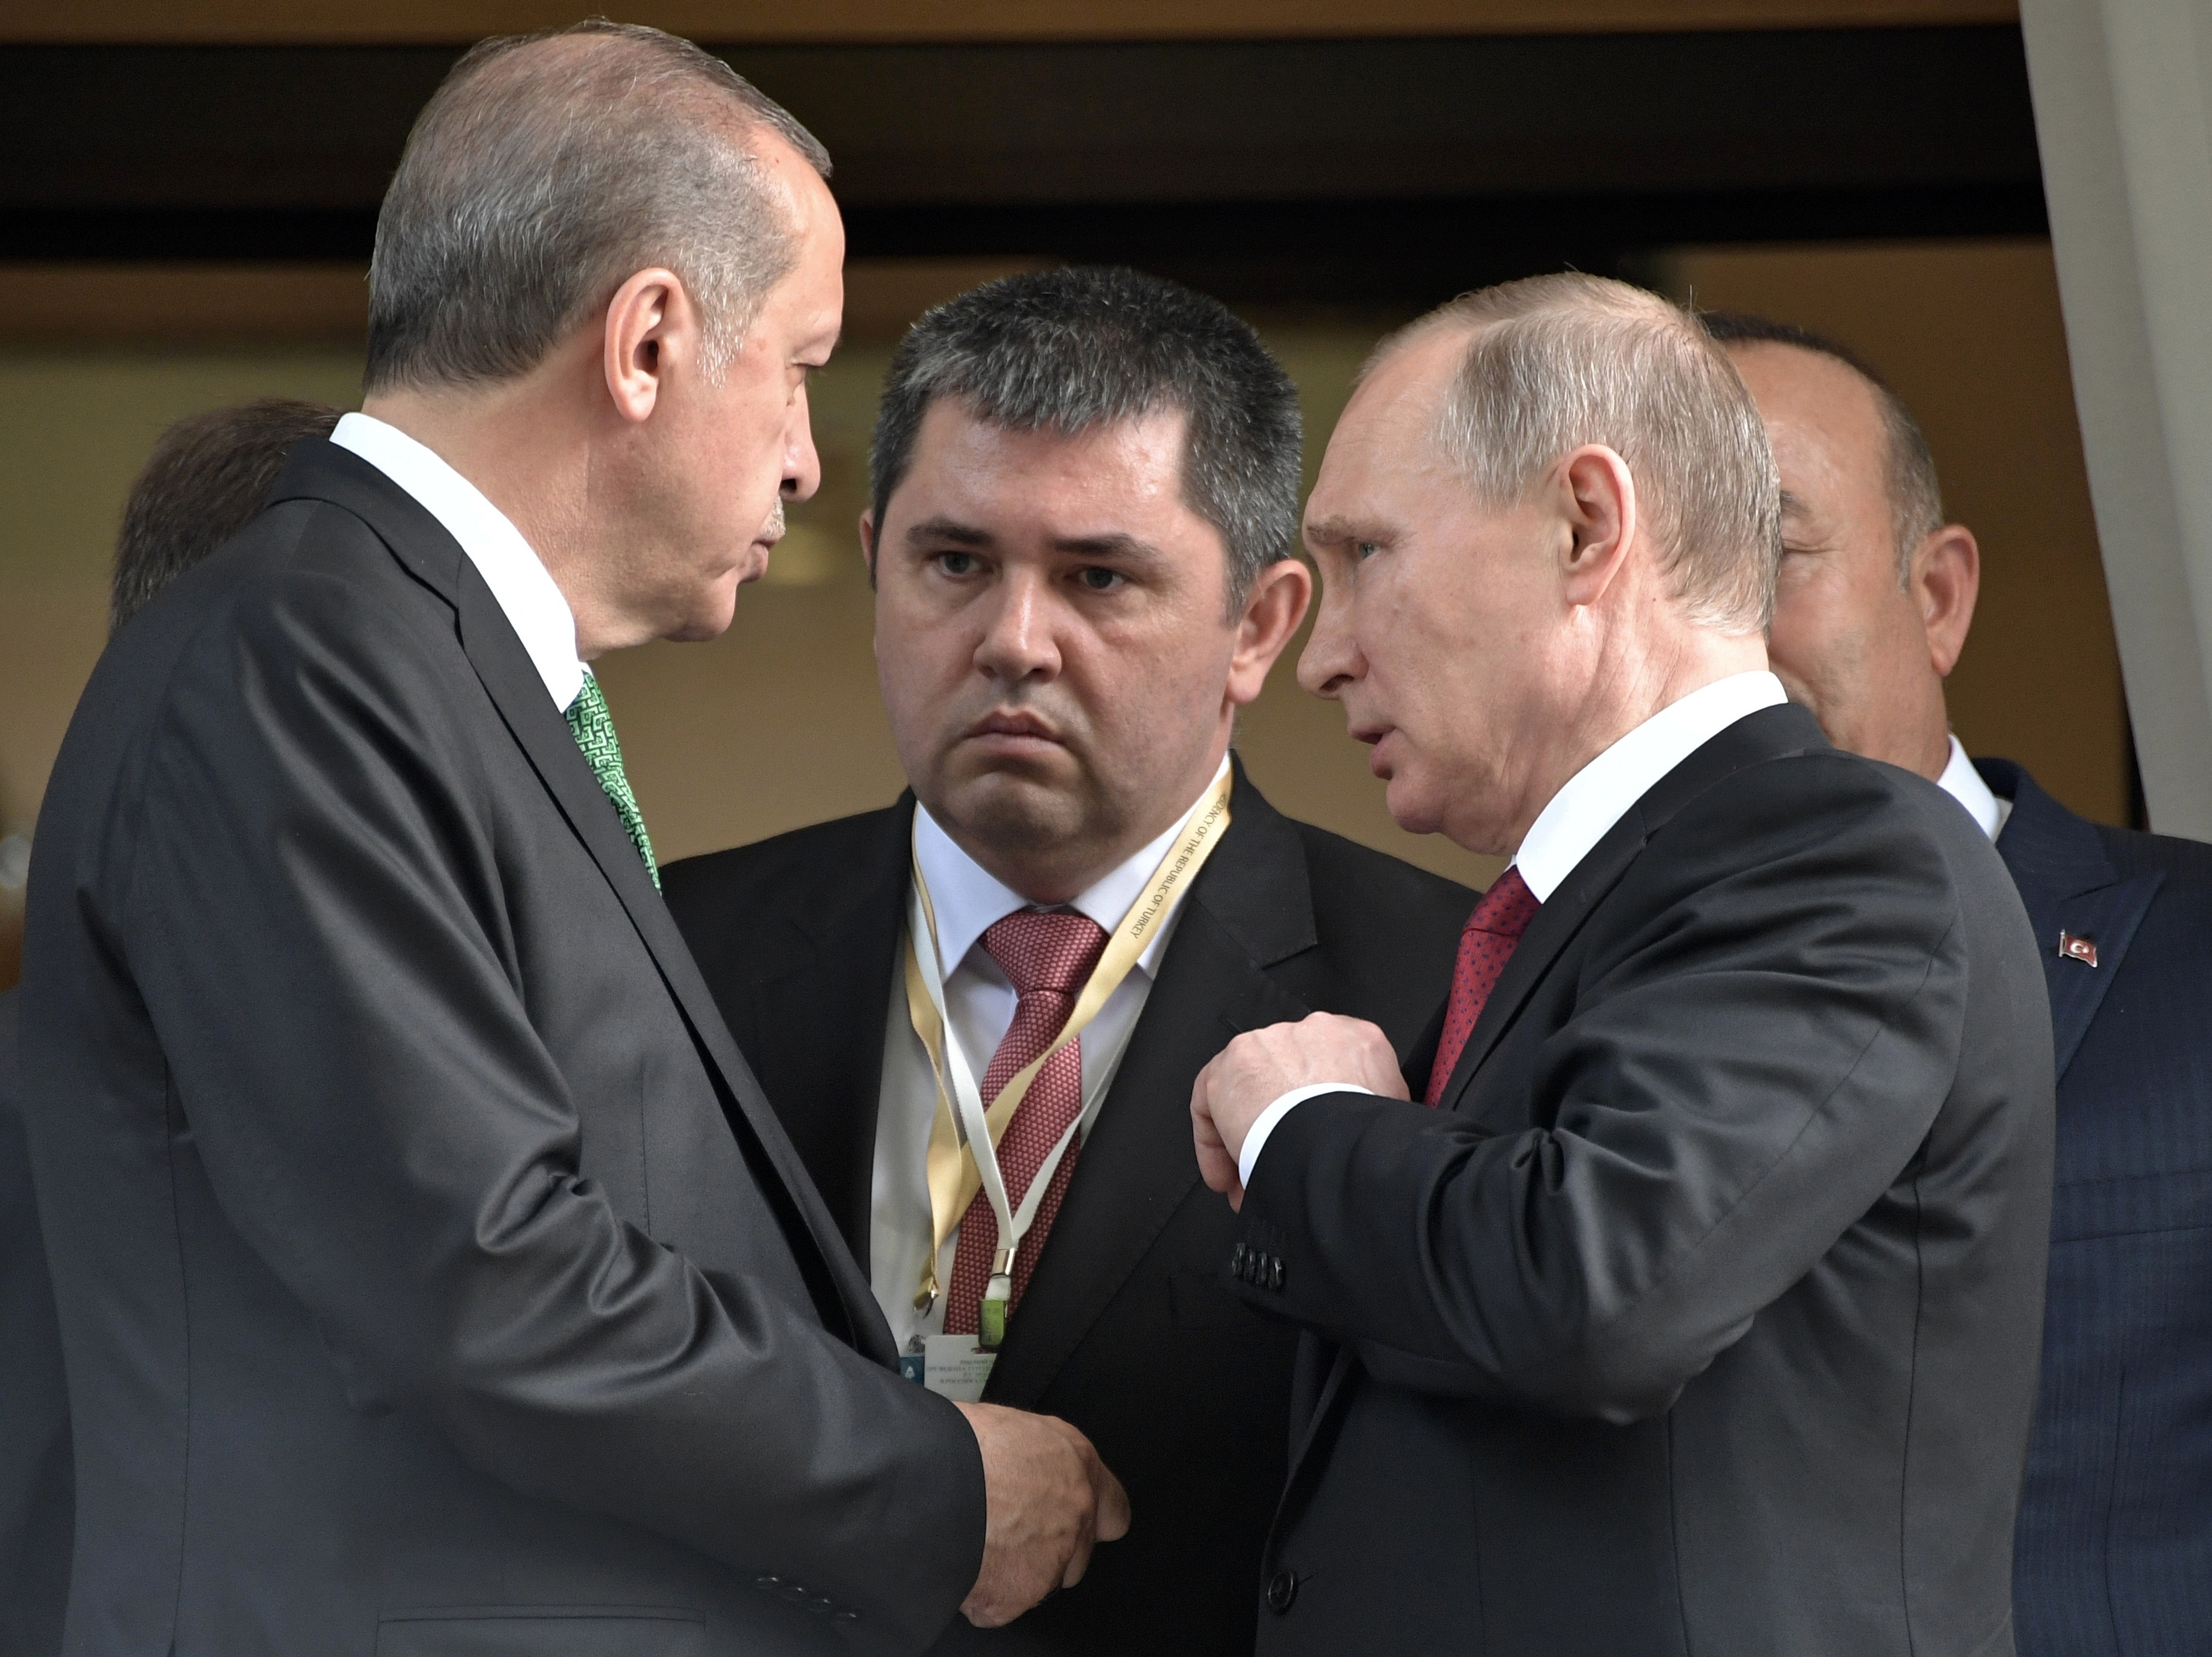 Turkish President Recep Tayyip Erdogan, left, speaks to Russian President Vladimir Putin, right, as he leaves after their meeting in Putin's residence in the Russian Black Sea resort of Sochi, Russia, Wednesday, May 3, 2017.